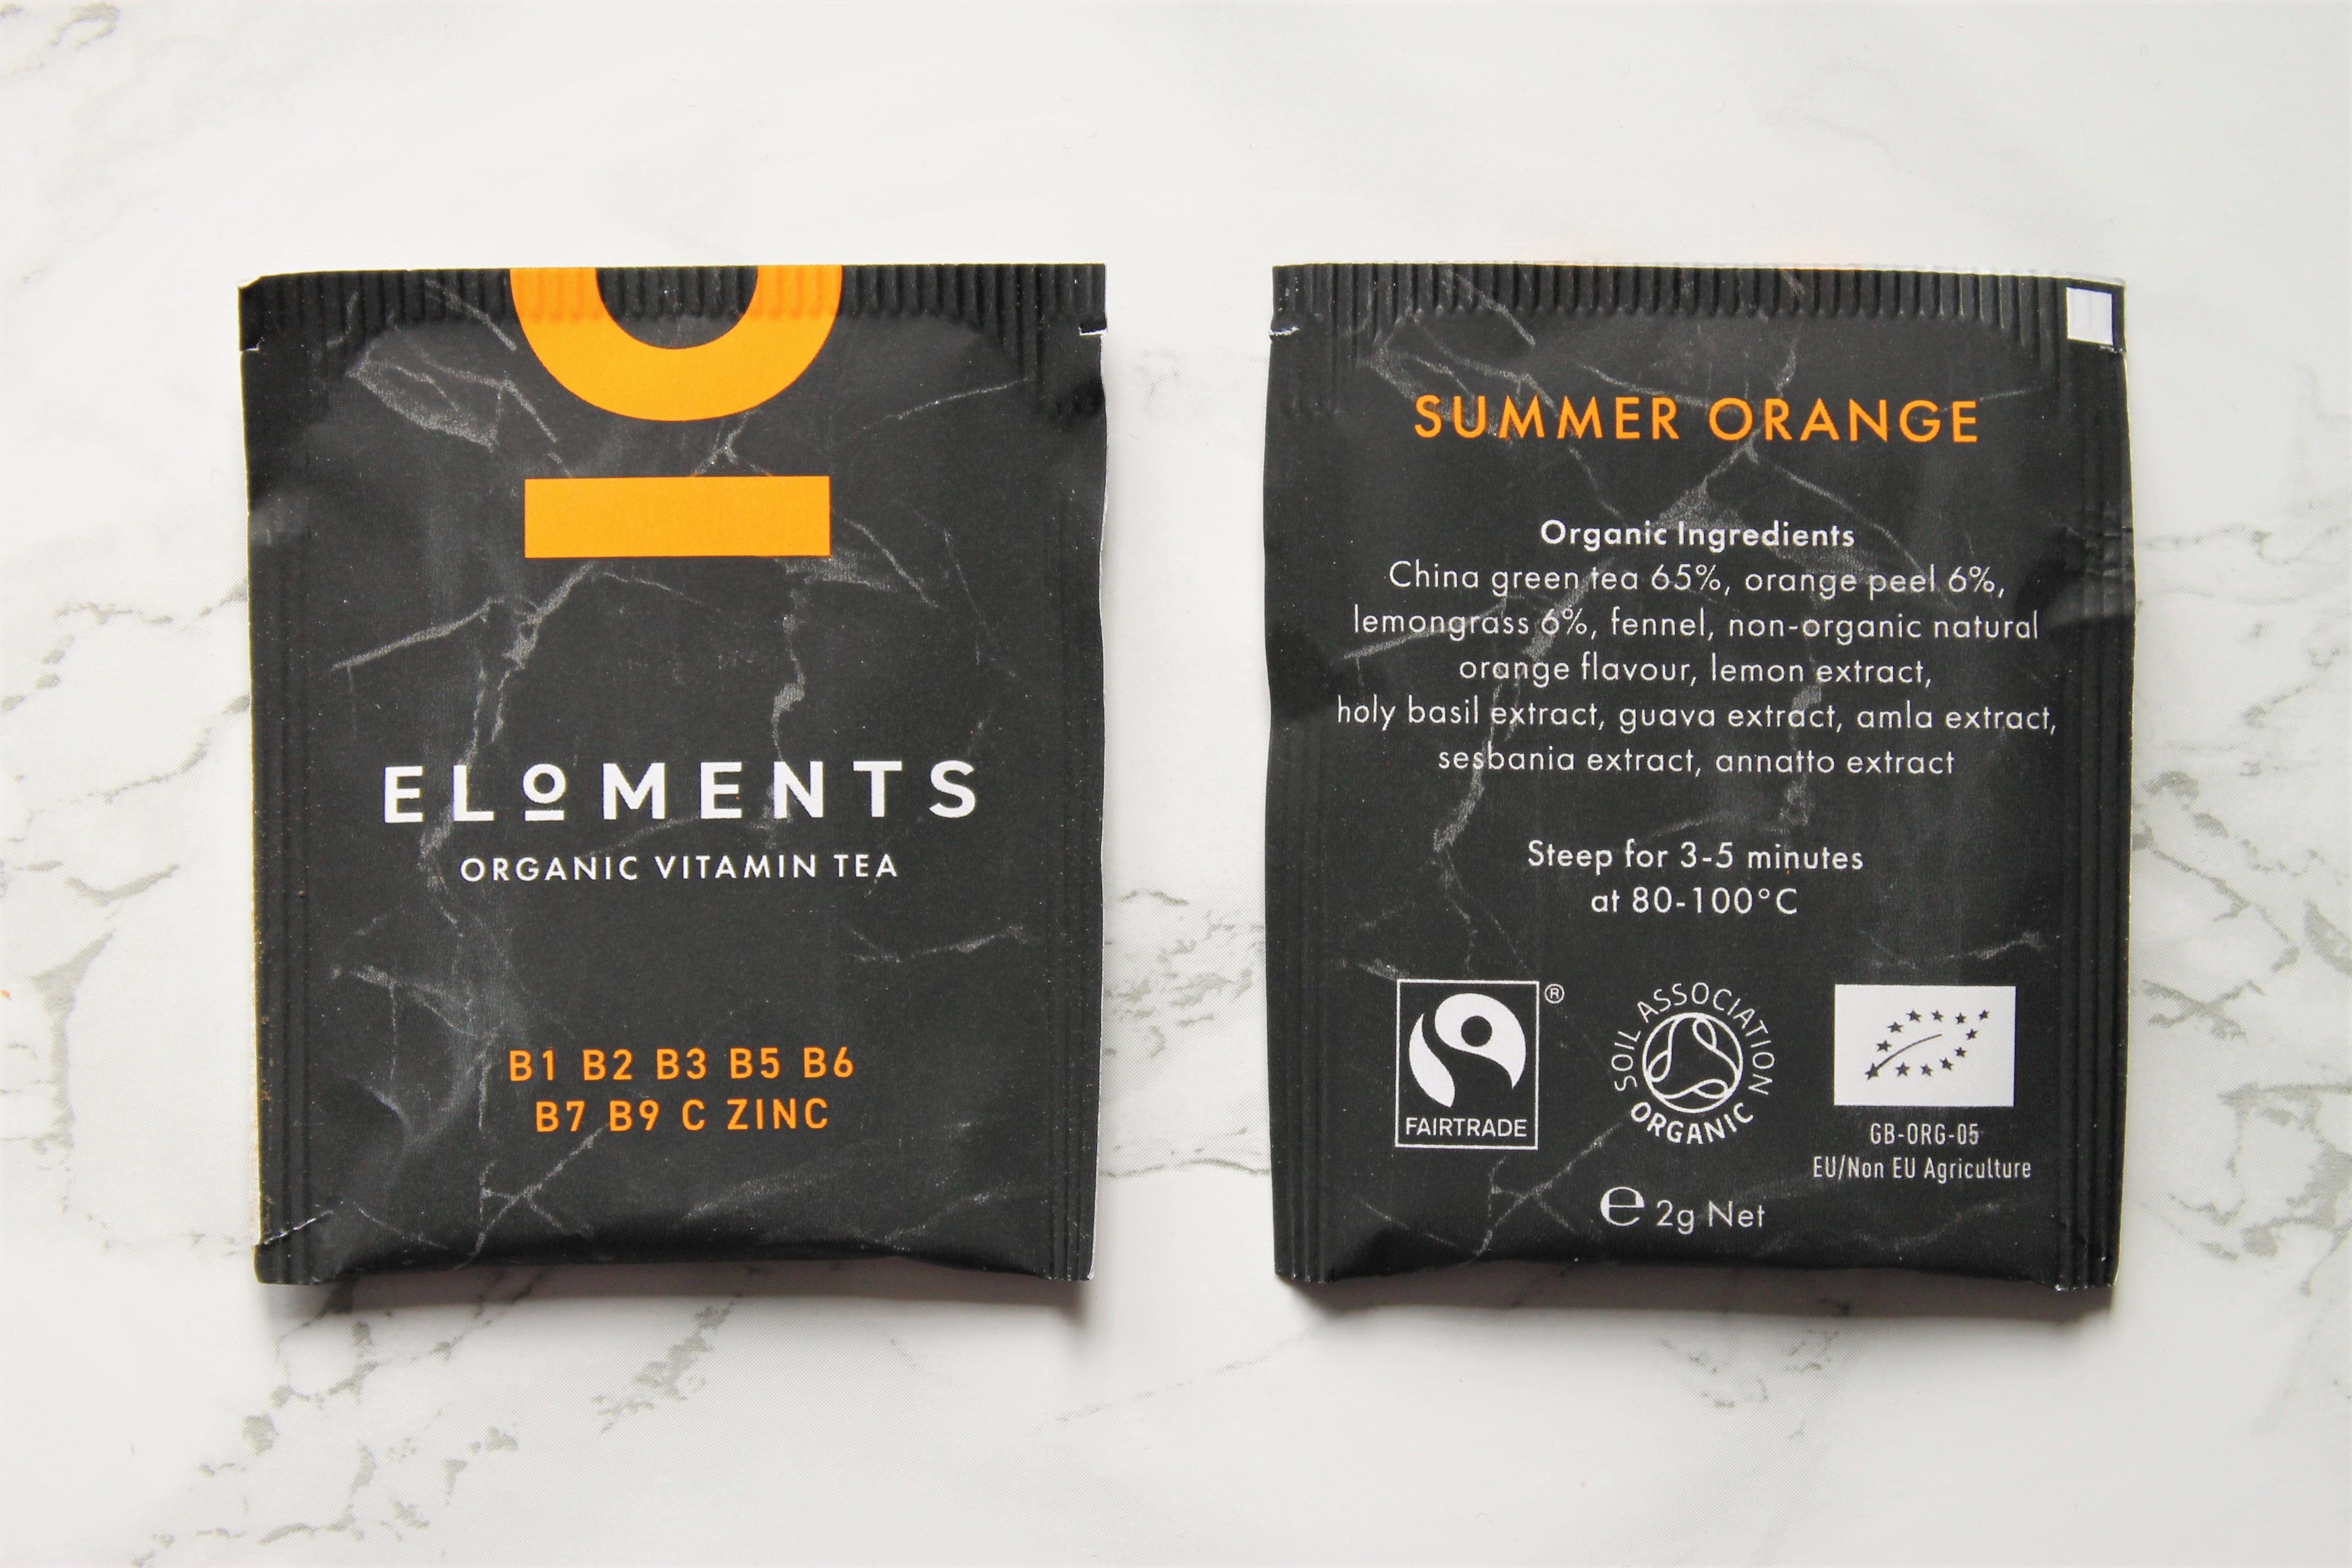 eloments vitamin tea summer orange